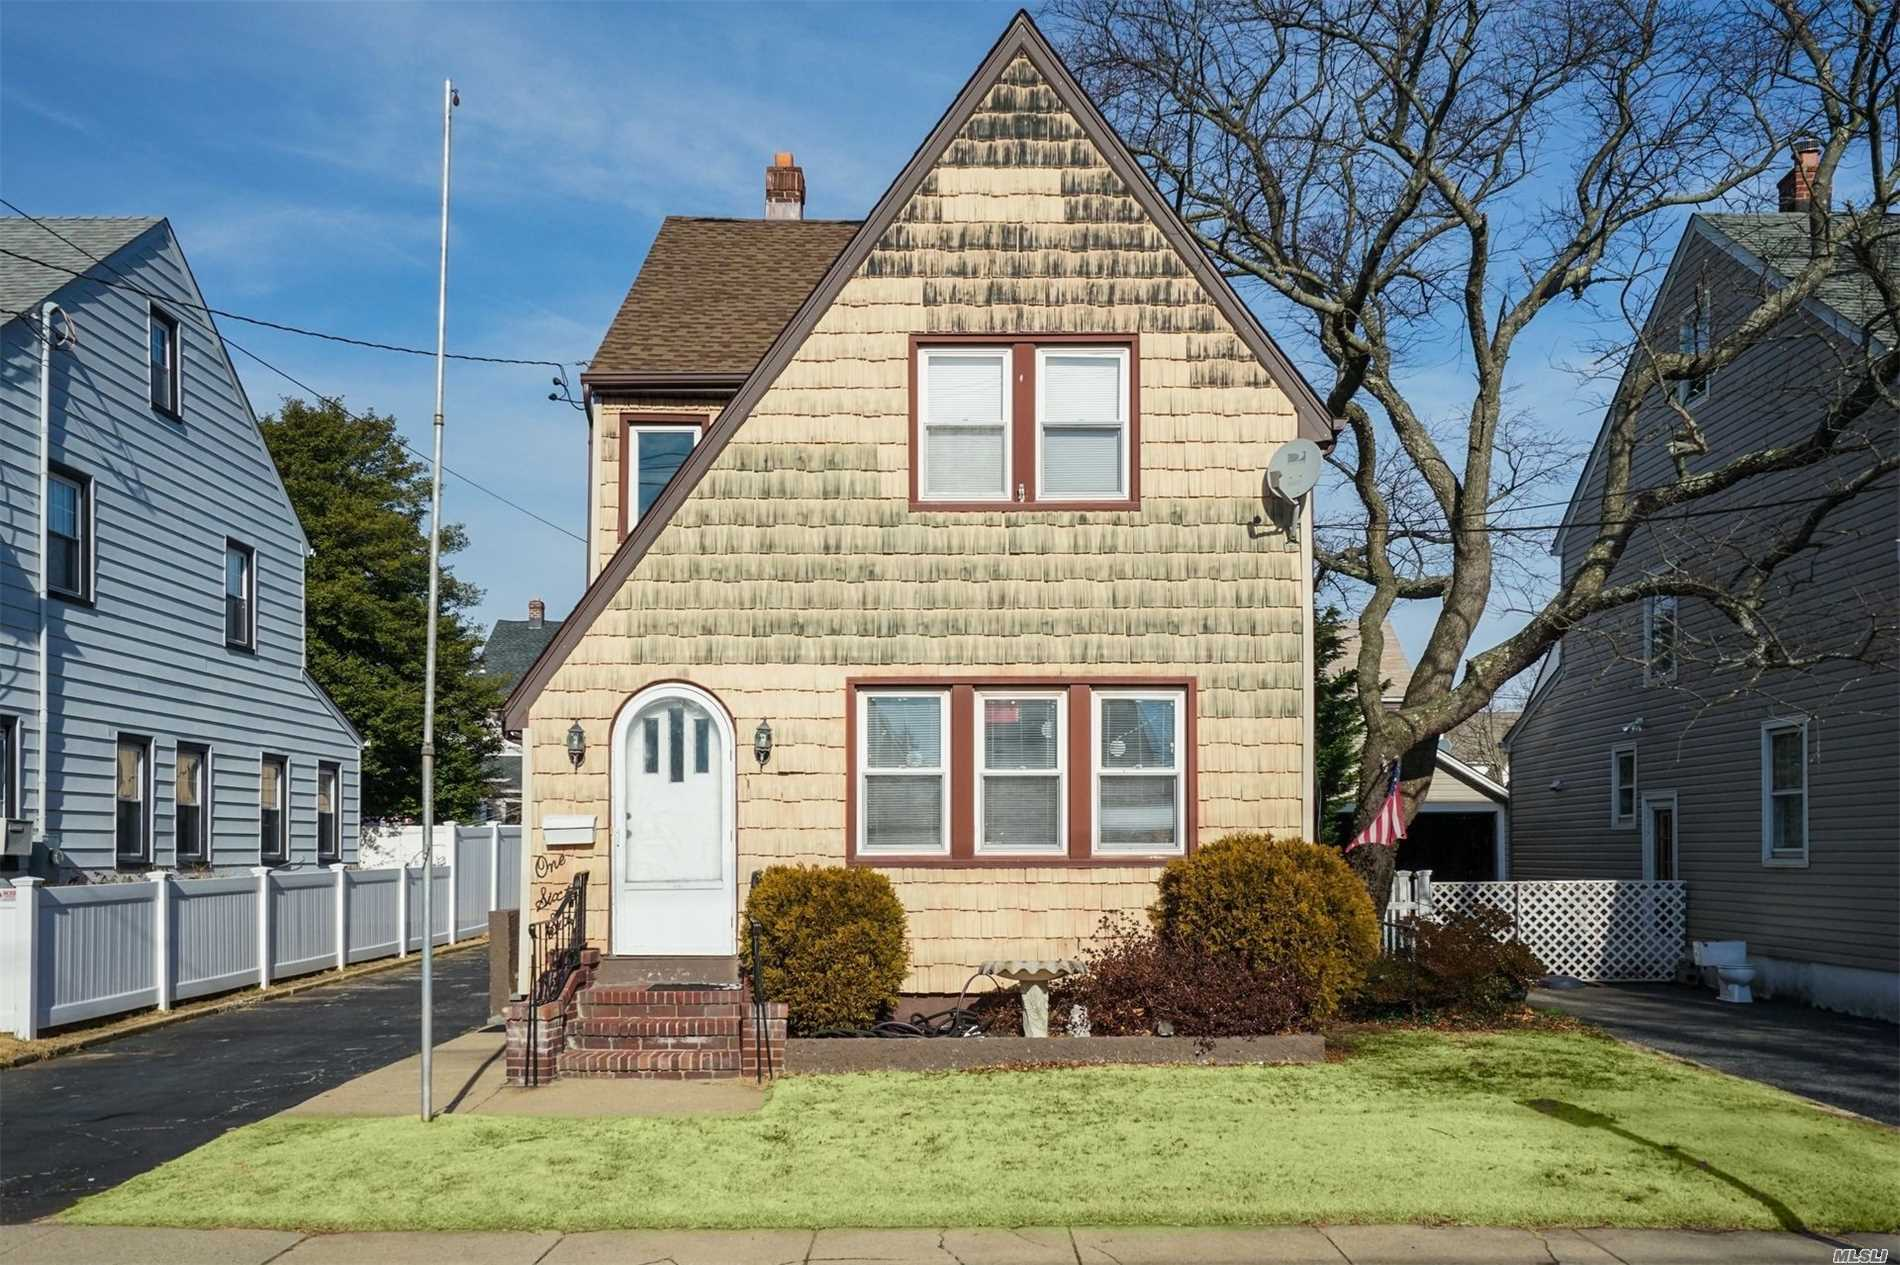 Bright And Sunny Legal Two Family In Heart Of West Hempstead. Laundry On Every Floor. Updated Baths, Kitchens, Roof And Boiler All Within The Last 5 Years. Basement Can Be Third Apartment. Detached 2.5 Car Garage Walking Distance To Train Station Low Taxes George Washington Elementary